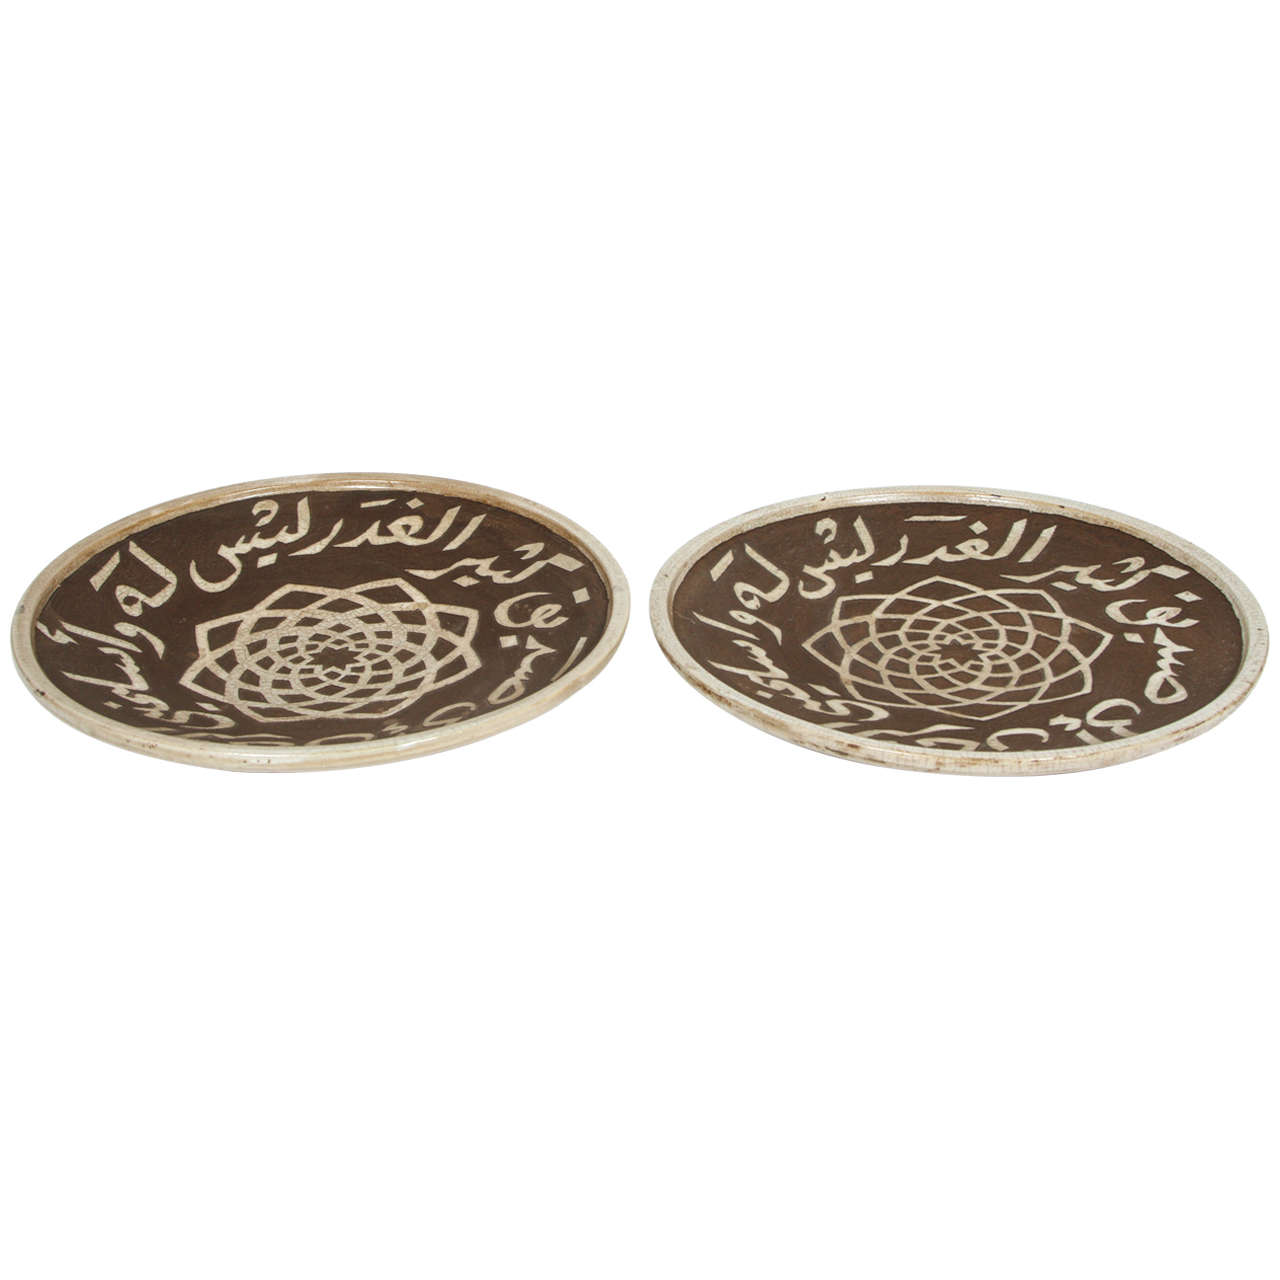 Moroccan Ceramic Plates Chiselled with Arabic Calligraphy Scripts For Sale